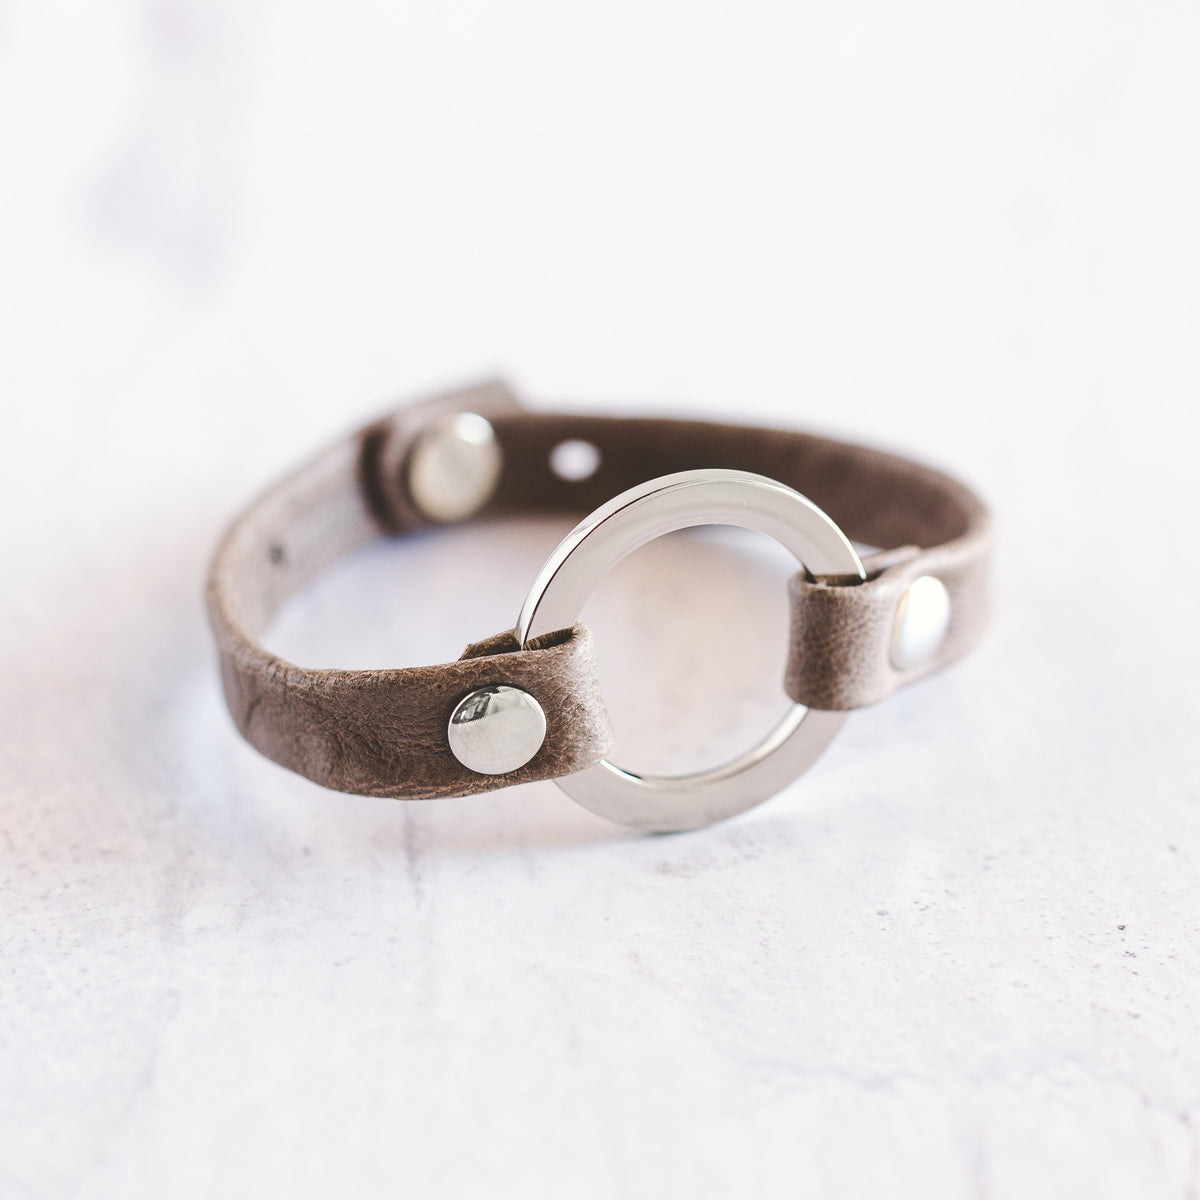 Grounding Bracelet - Shiny Silver